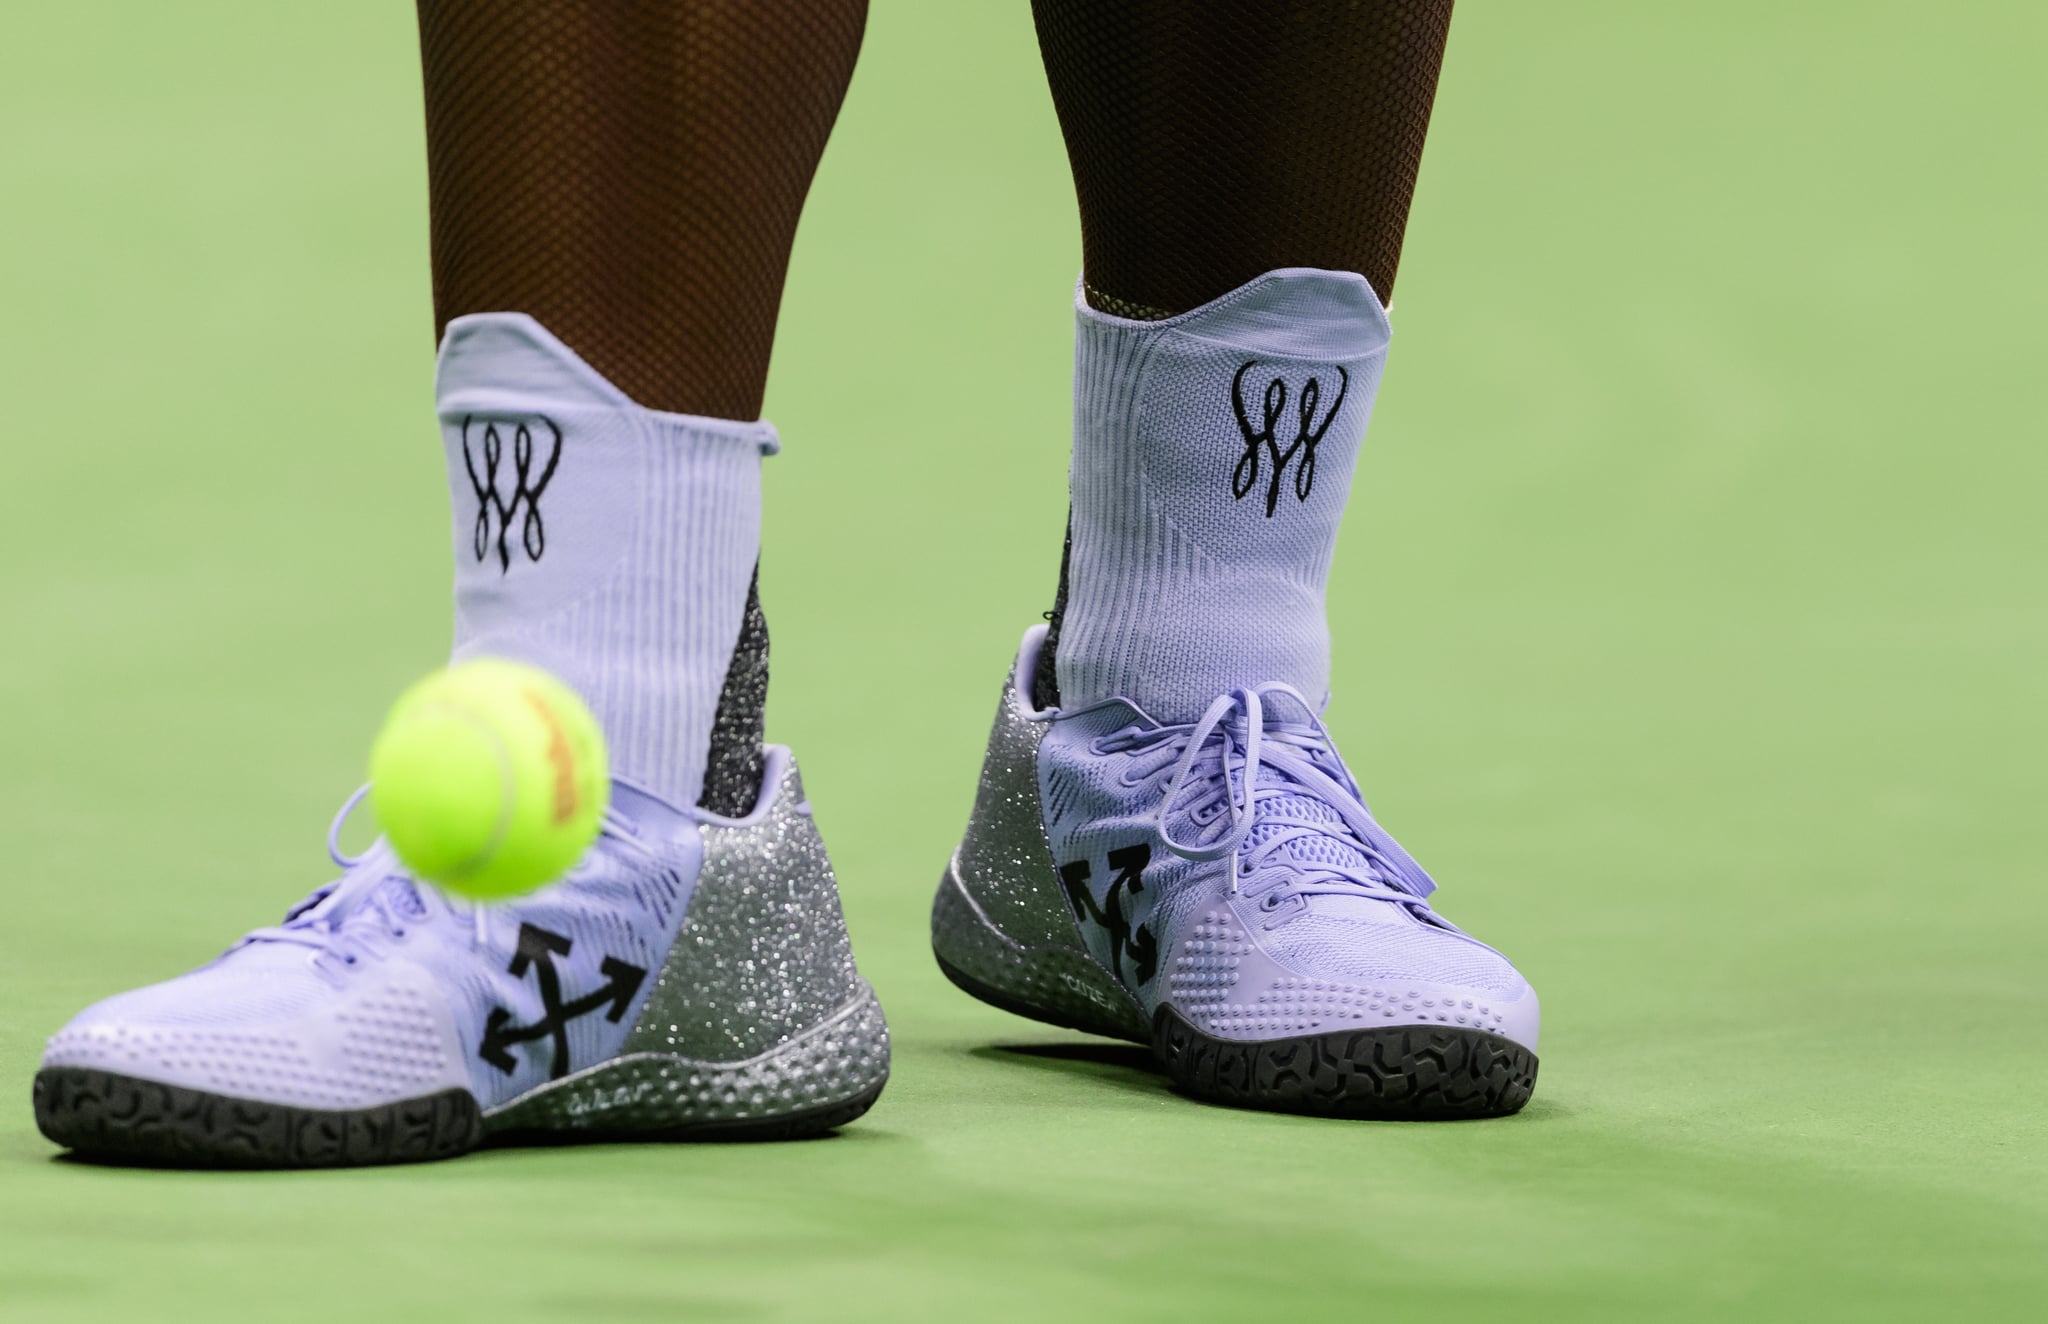 Serena Williams Took a Typical Tennis